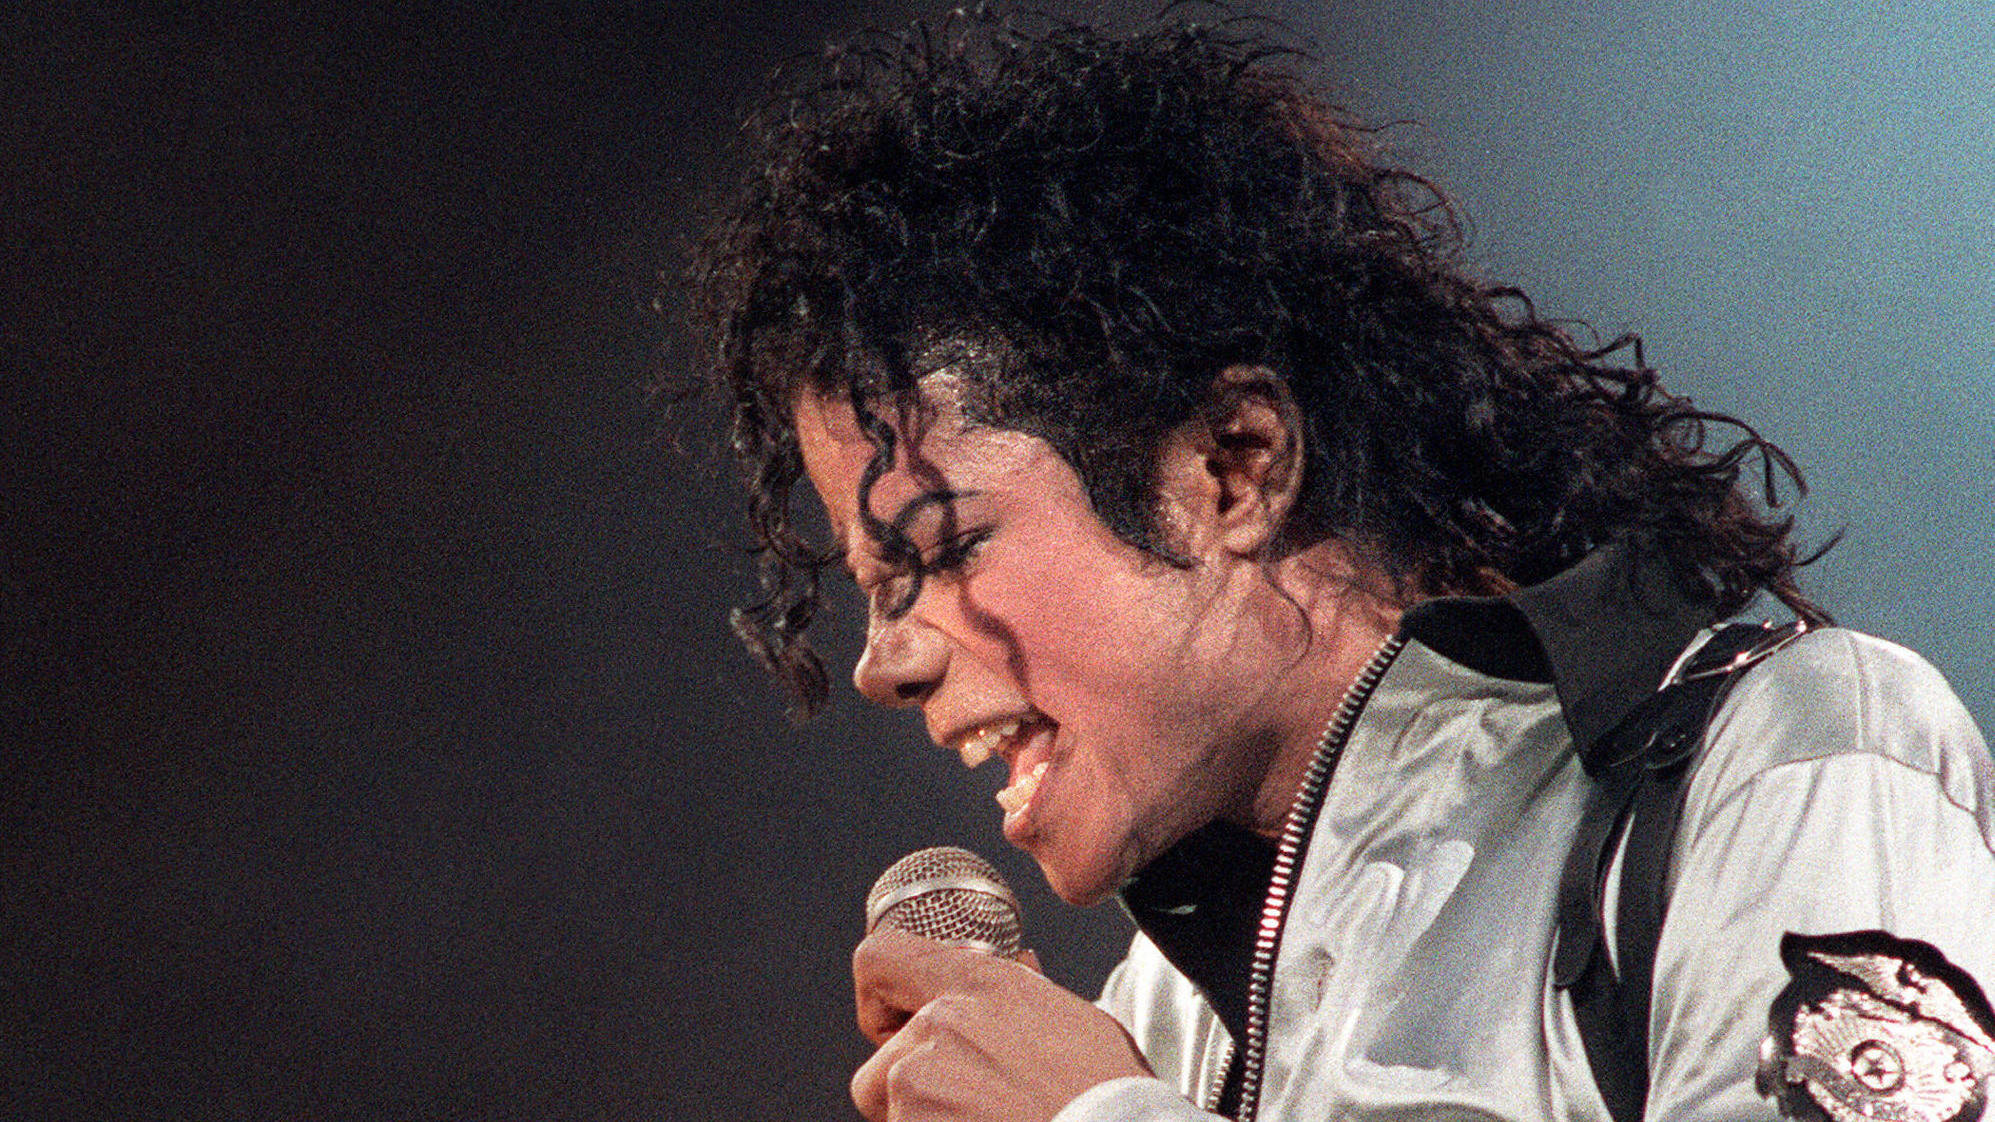 The top 30 best Michael Jackson songs ever, ranked in order